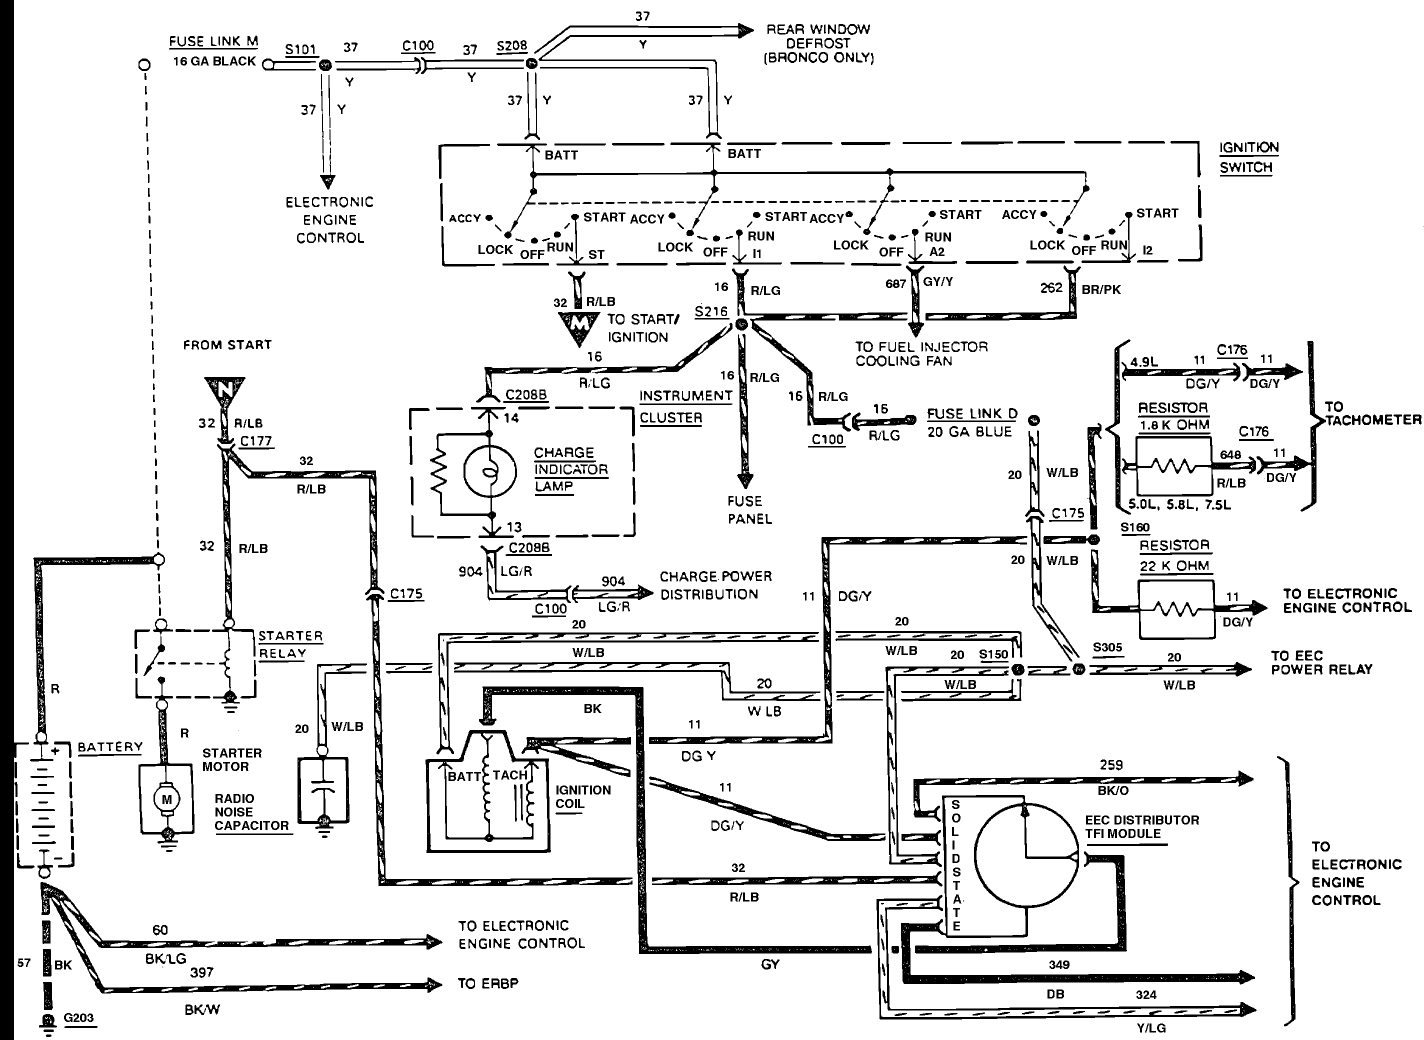 1990 Ford F250 Wiring Diagram from wholefoodsonabudget.com